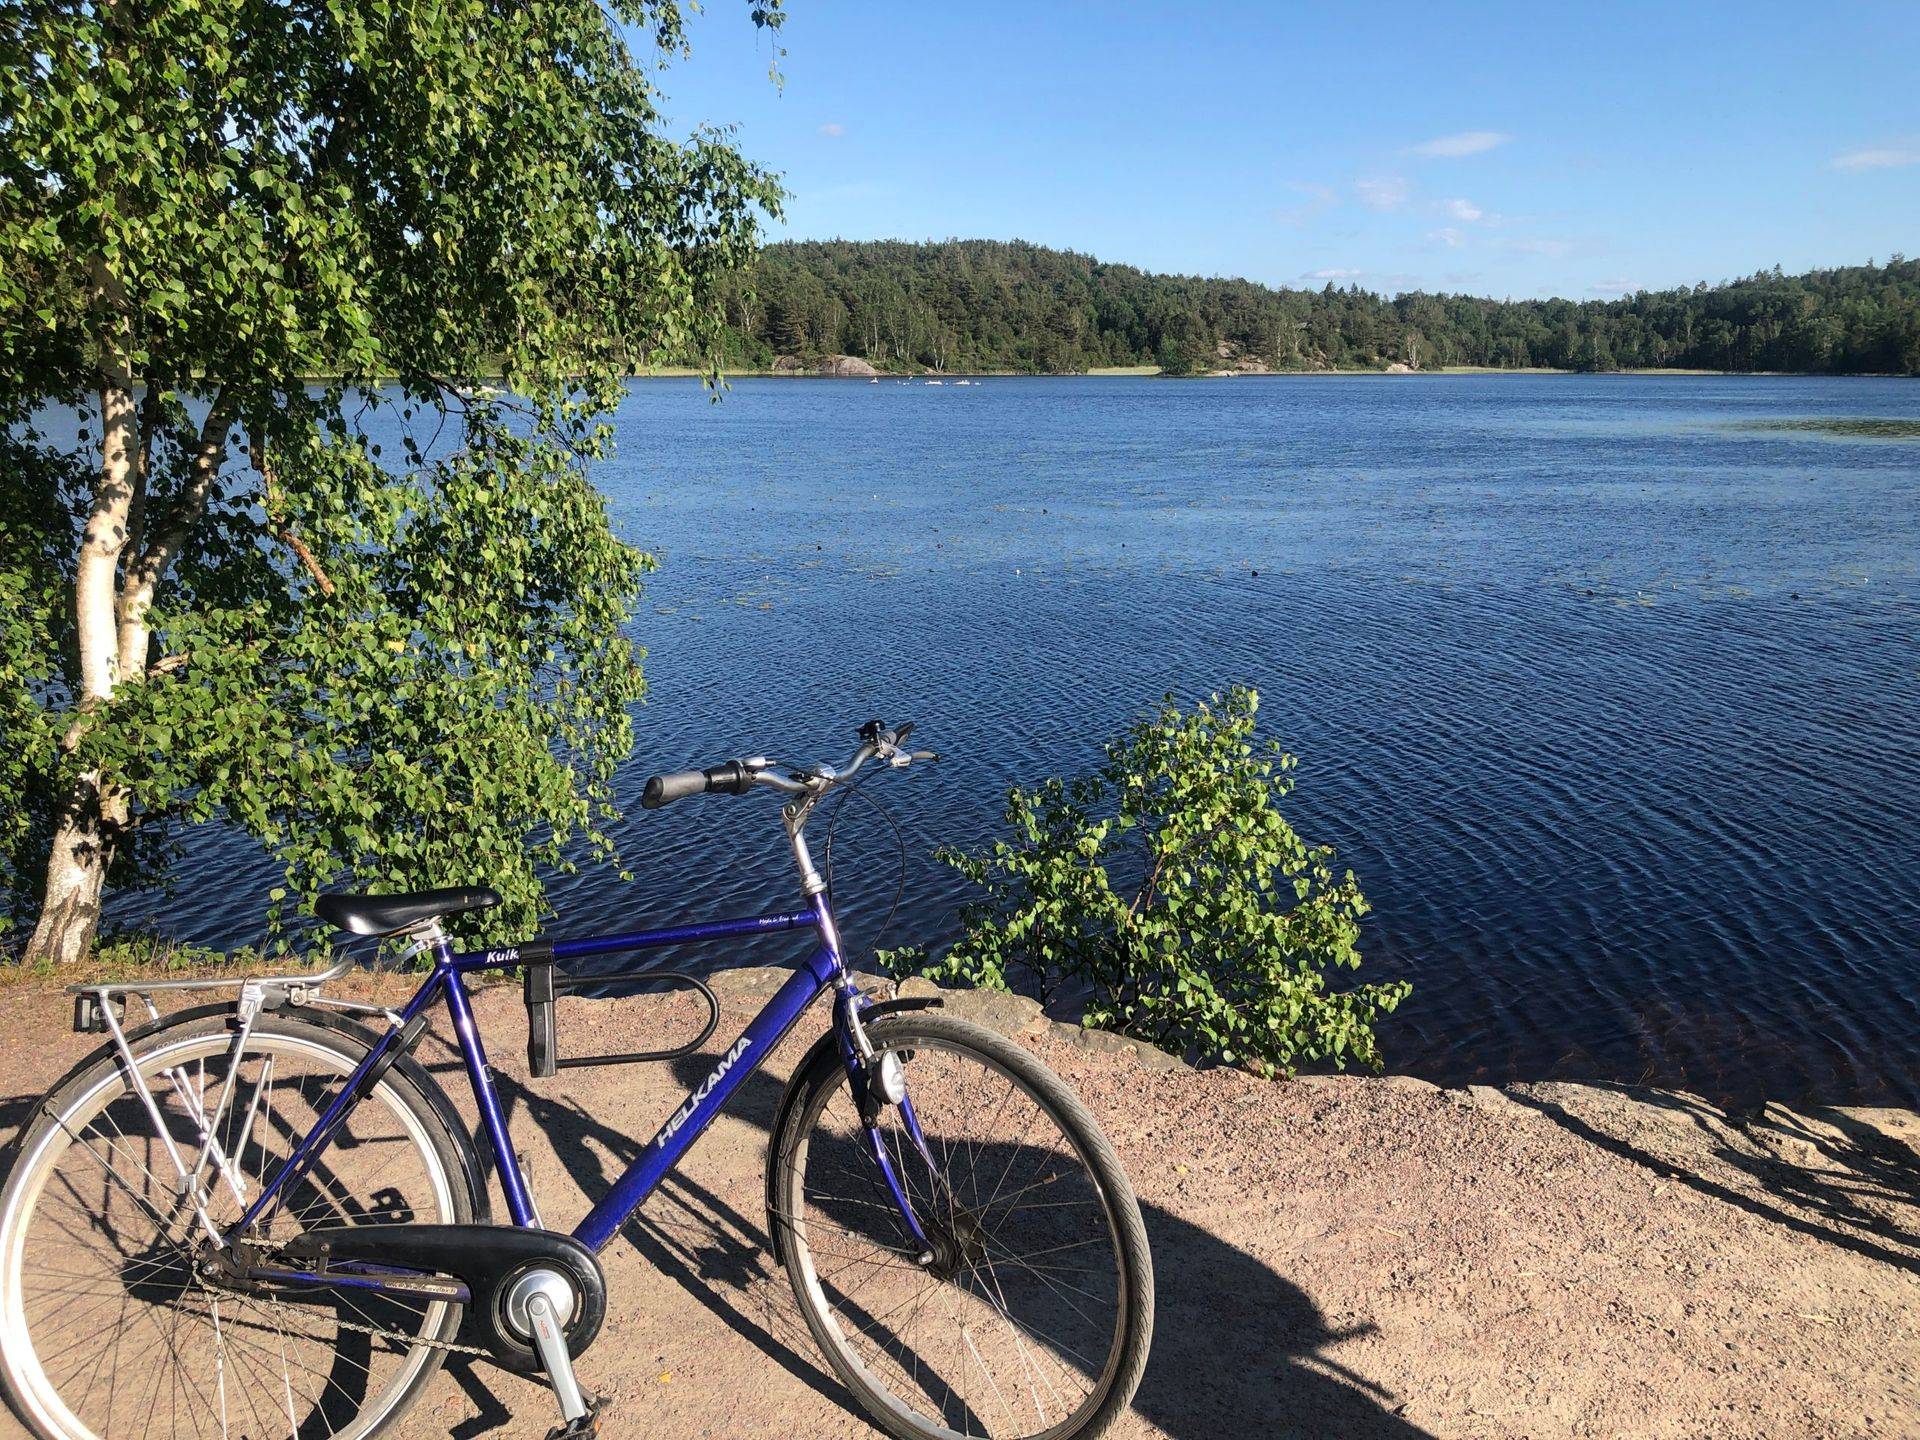 Dark blue bicycle in front of a lake.